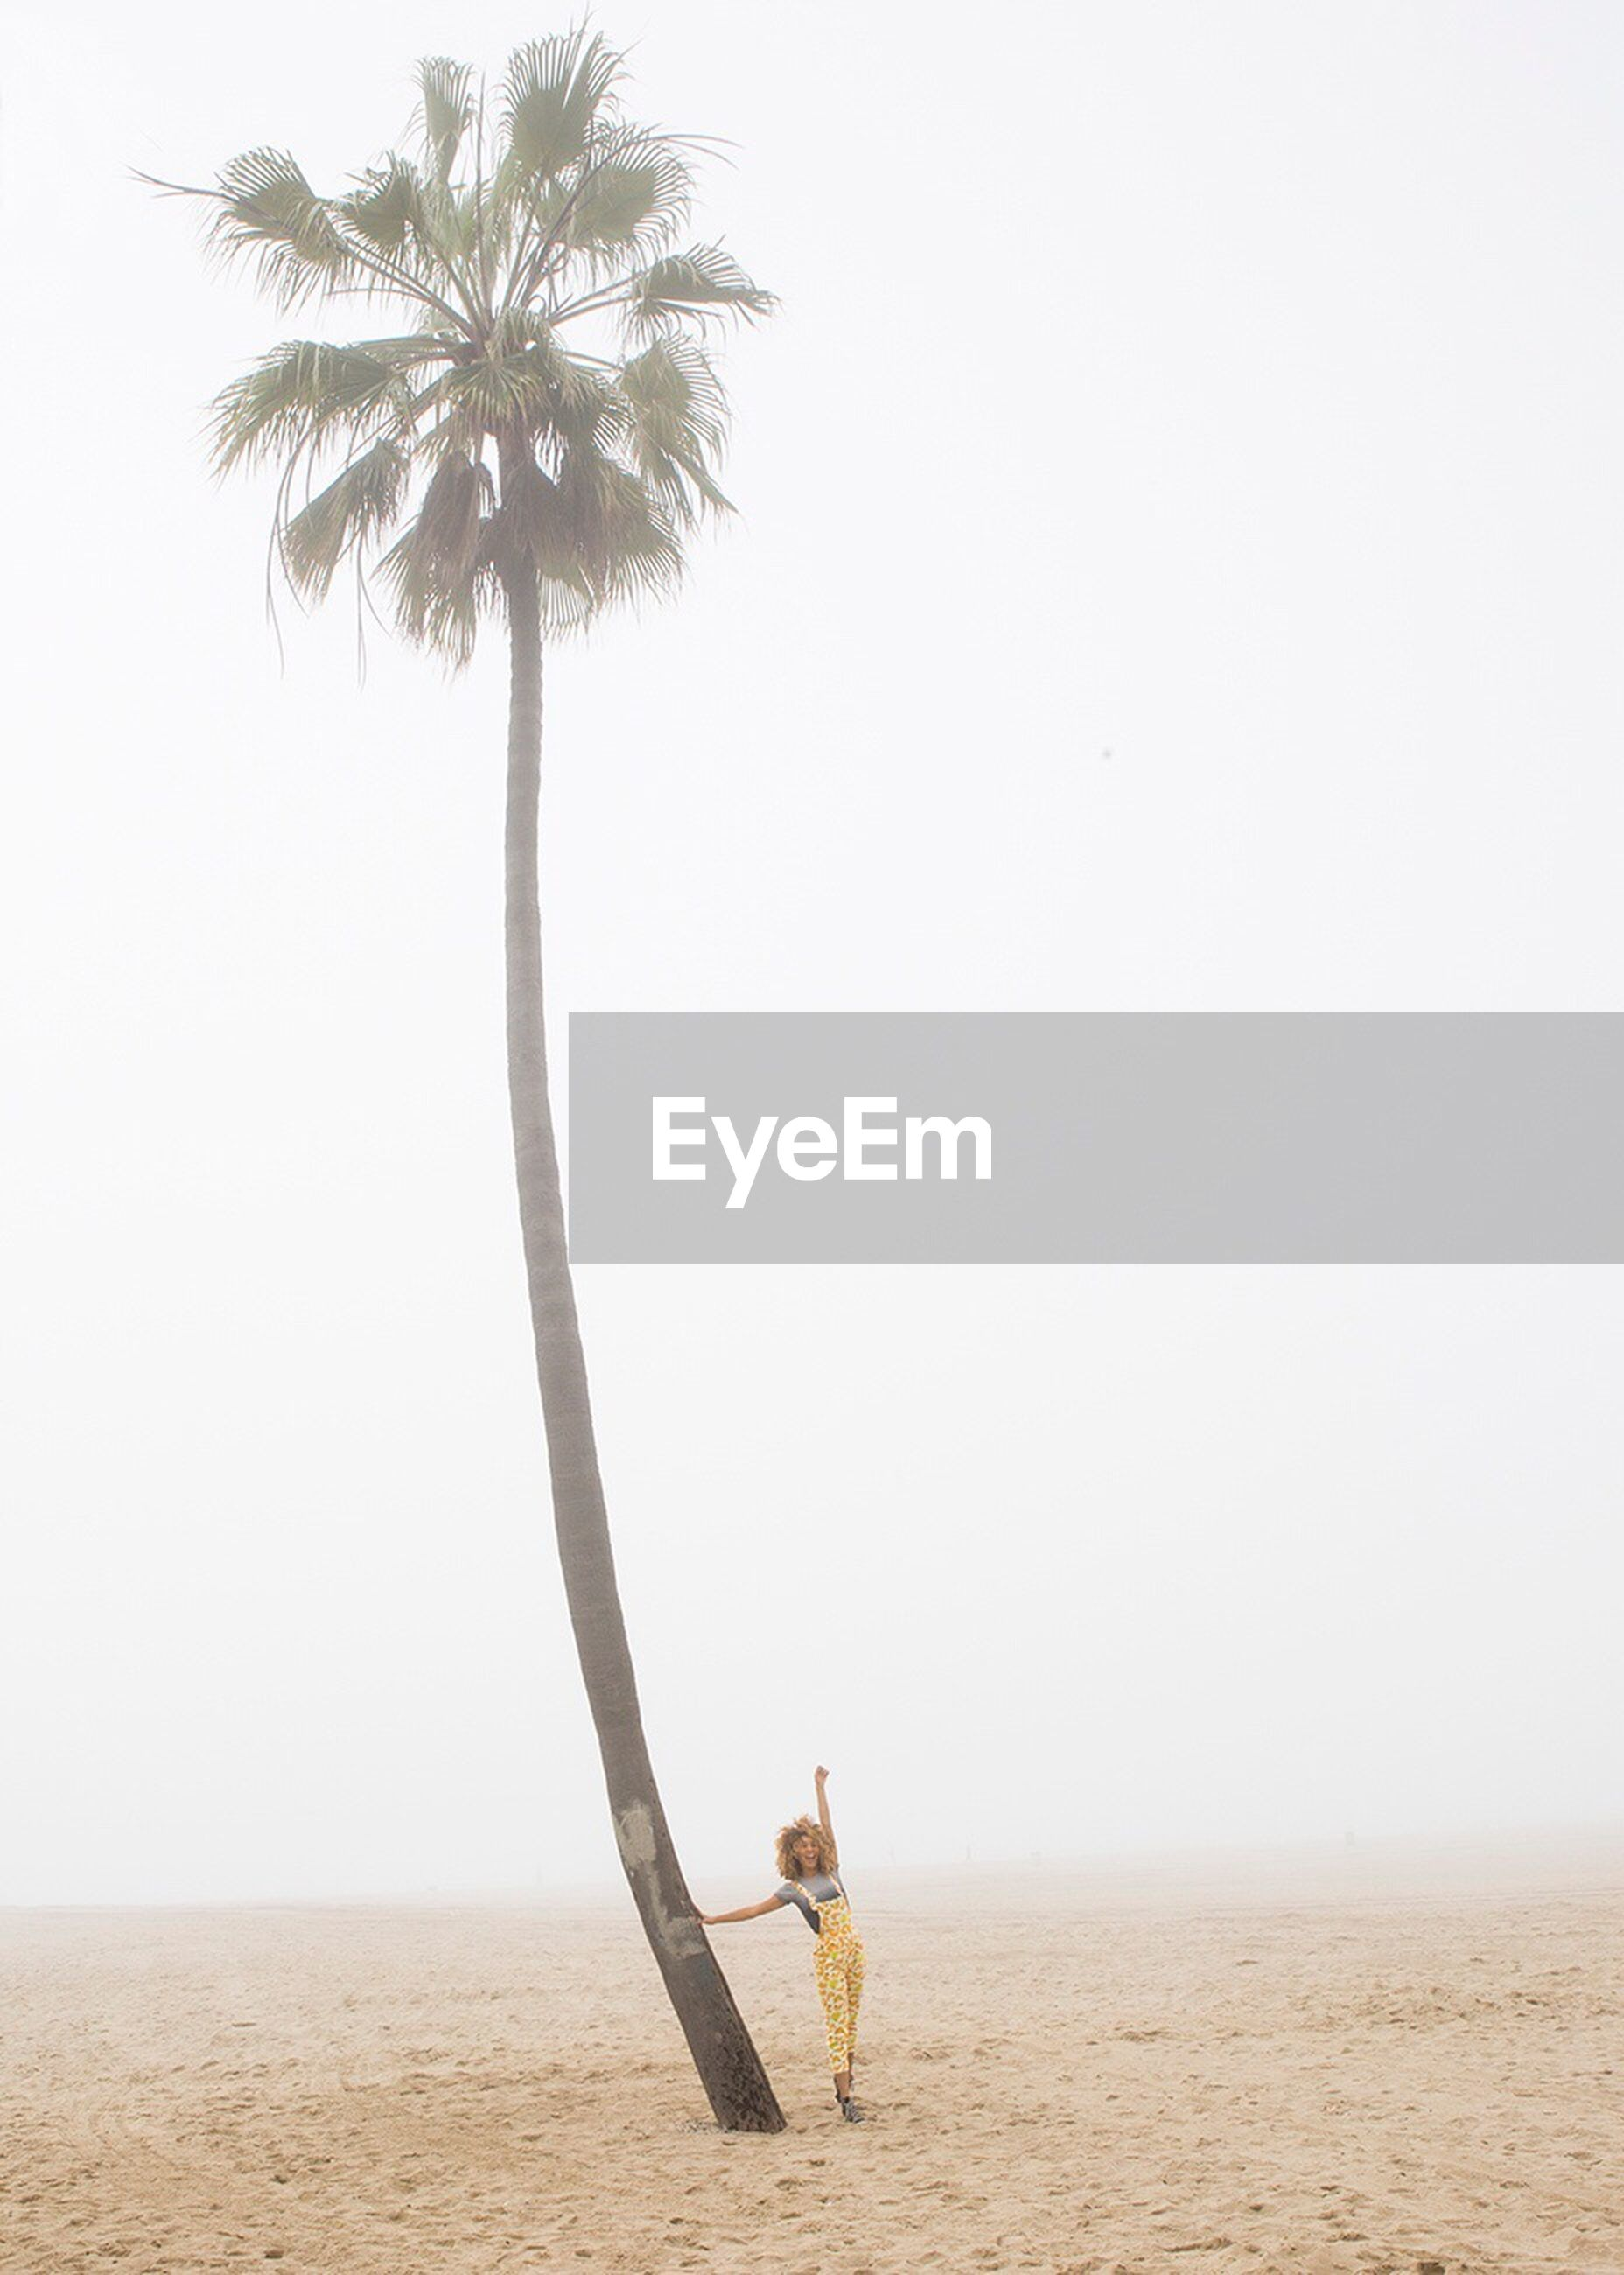 sand, beach, palm tree, one person, day, leisure activity, full length, clear sky, lifestyles, real people, beauty in nature, young women, standing, outdoors, nature, young adult, scenics, desert, sky, people